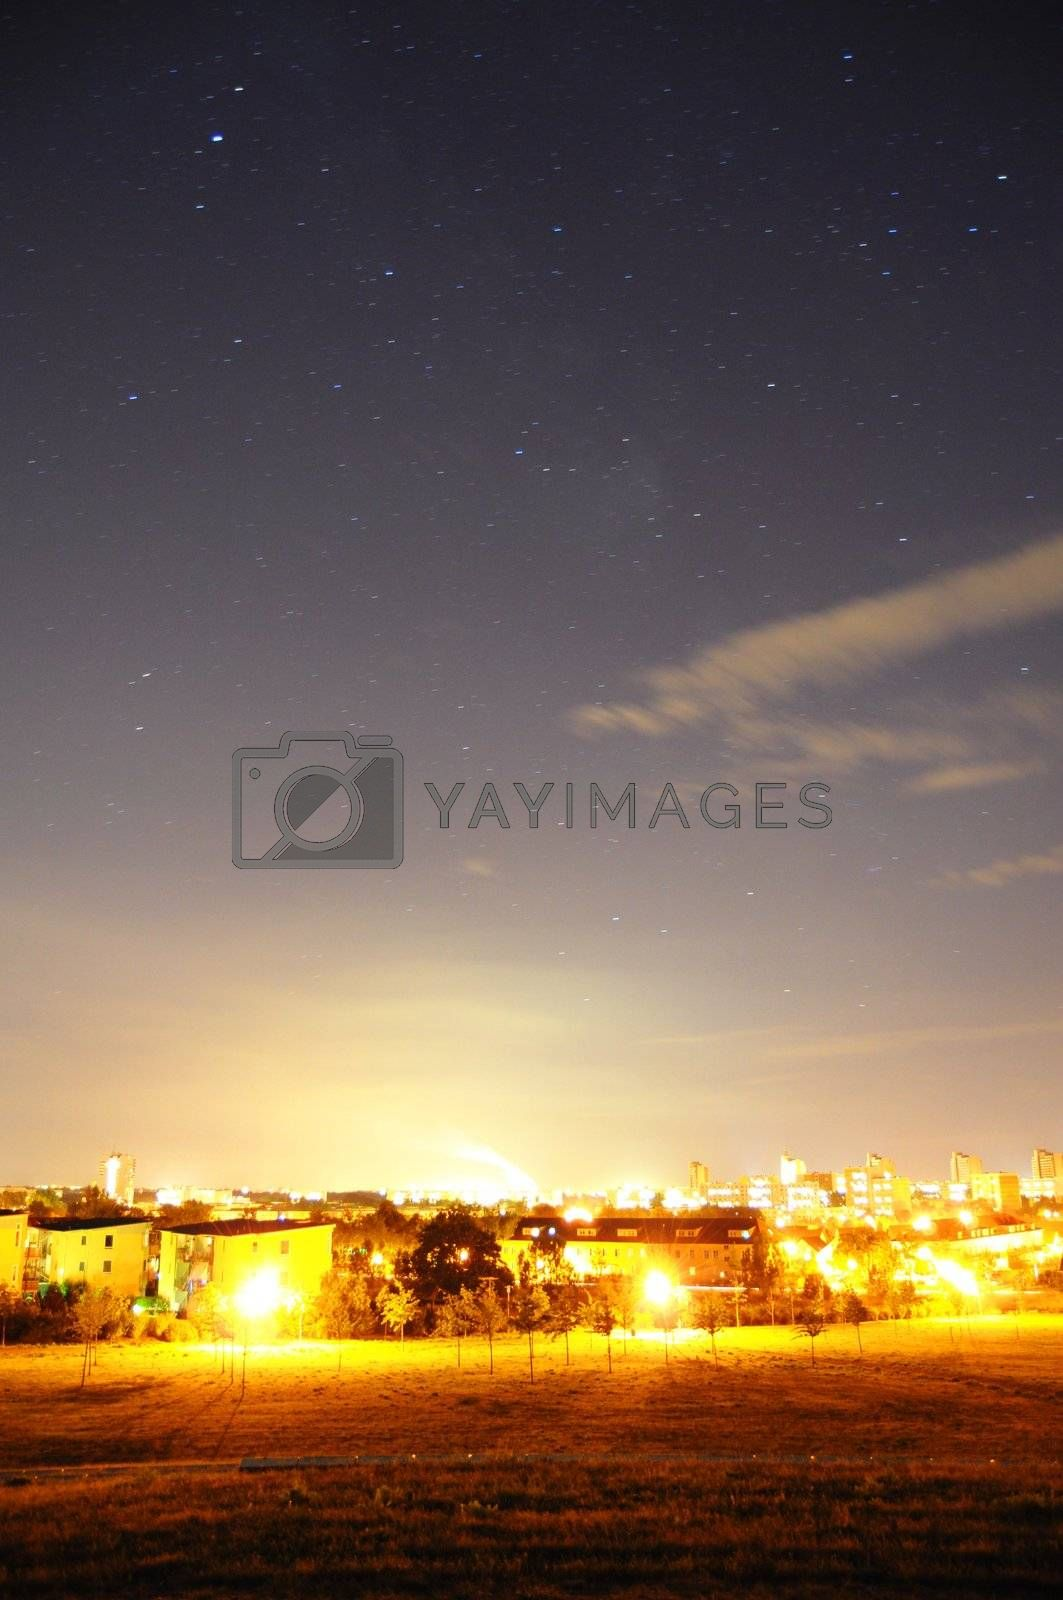 night sky with stars over the town or city and copyspace